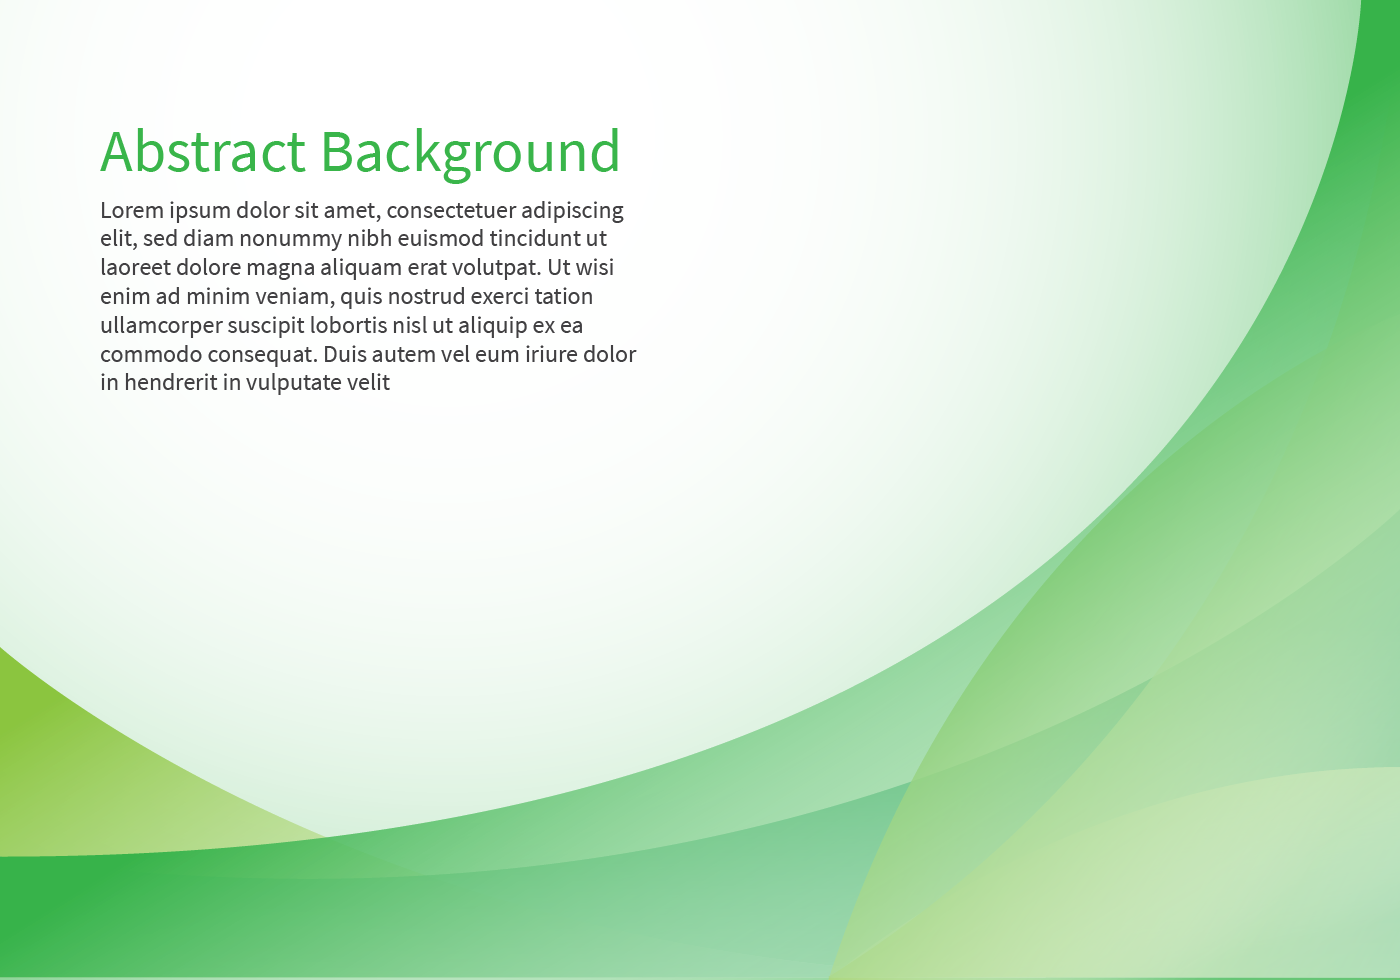 Green Abstract Background Free Vector Art - (74,515 Free